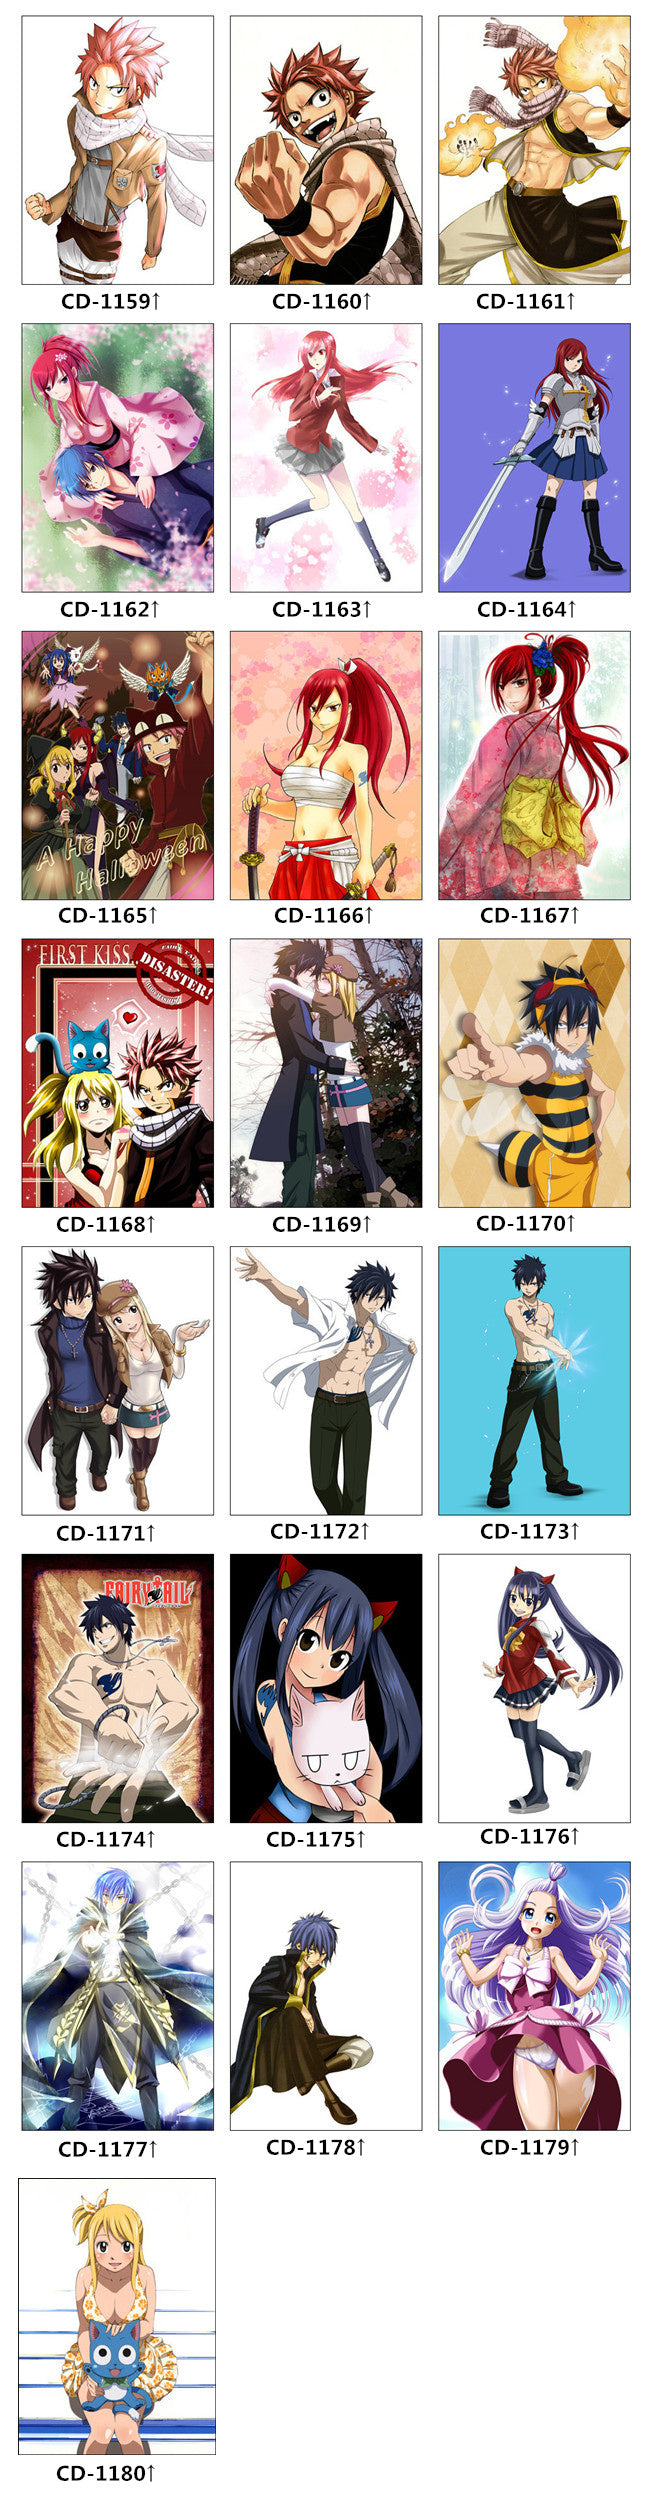 Fairy Tail Bed Set designs